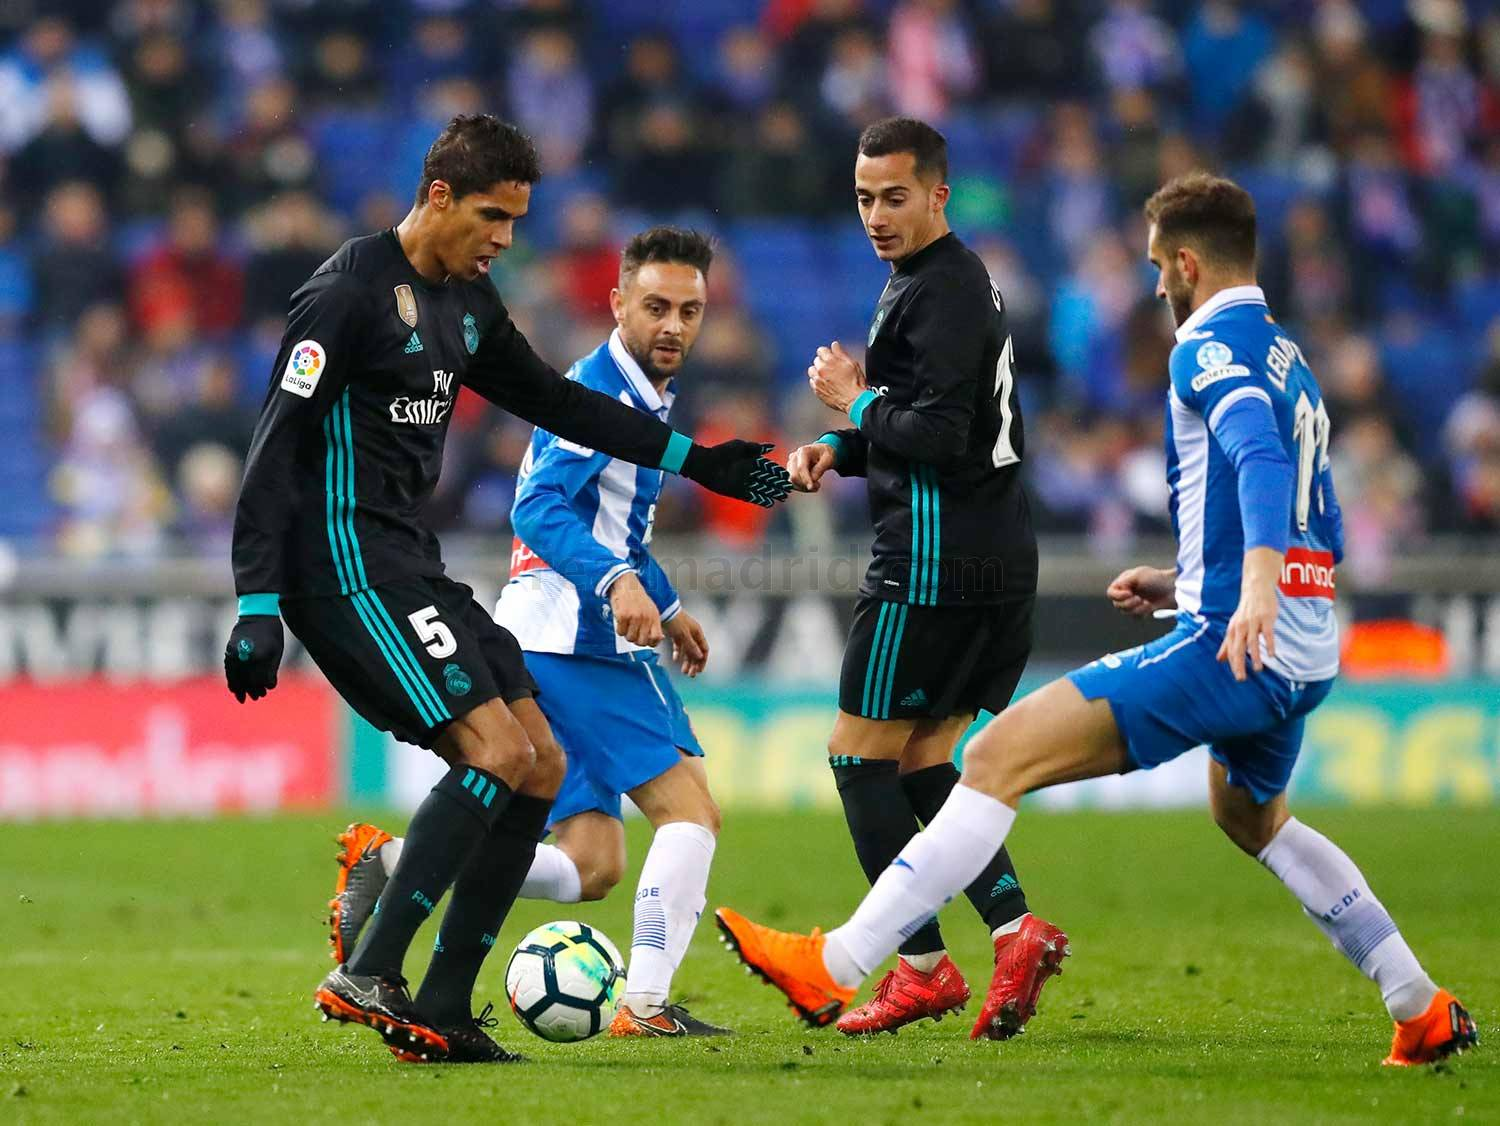 Real Madrid - Espanyol - Real Madrid - 27-02-2018